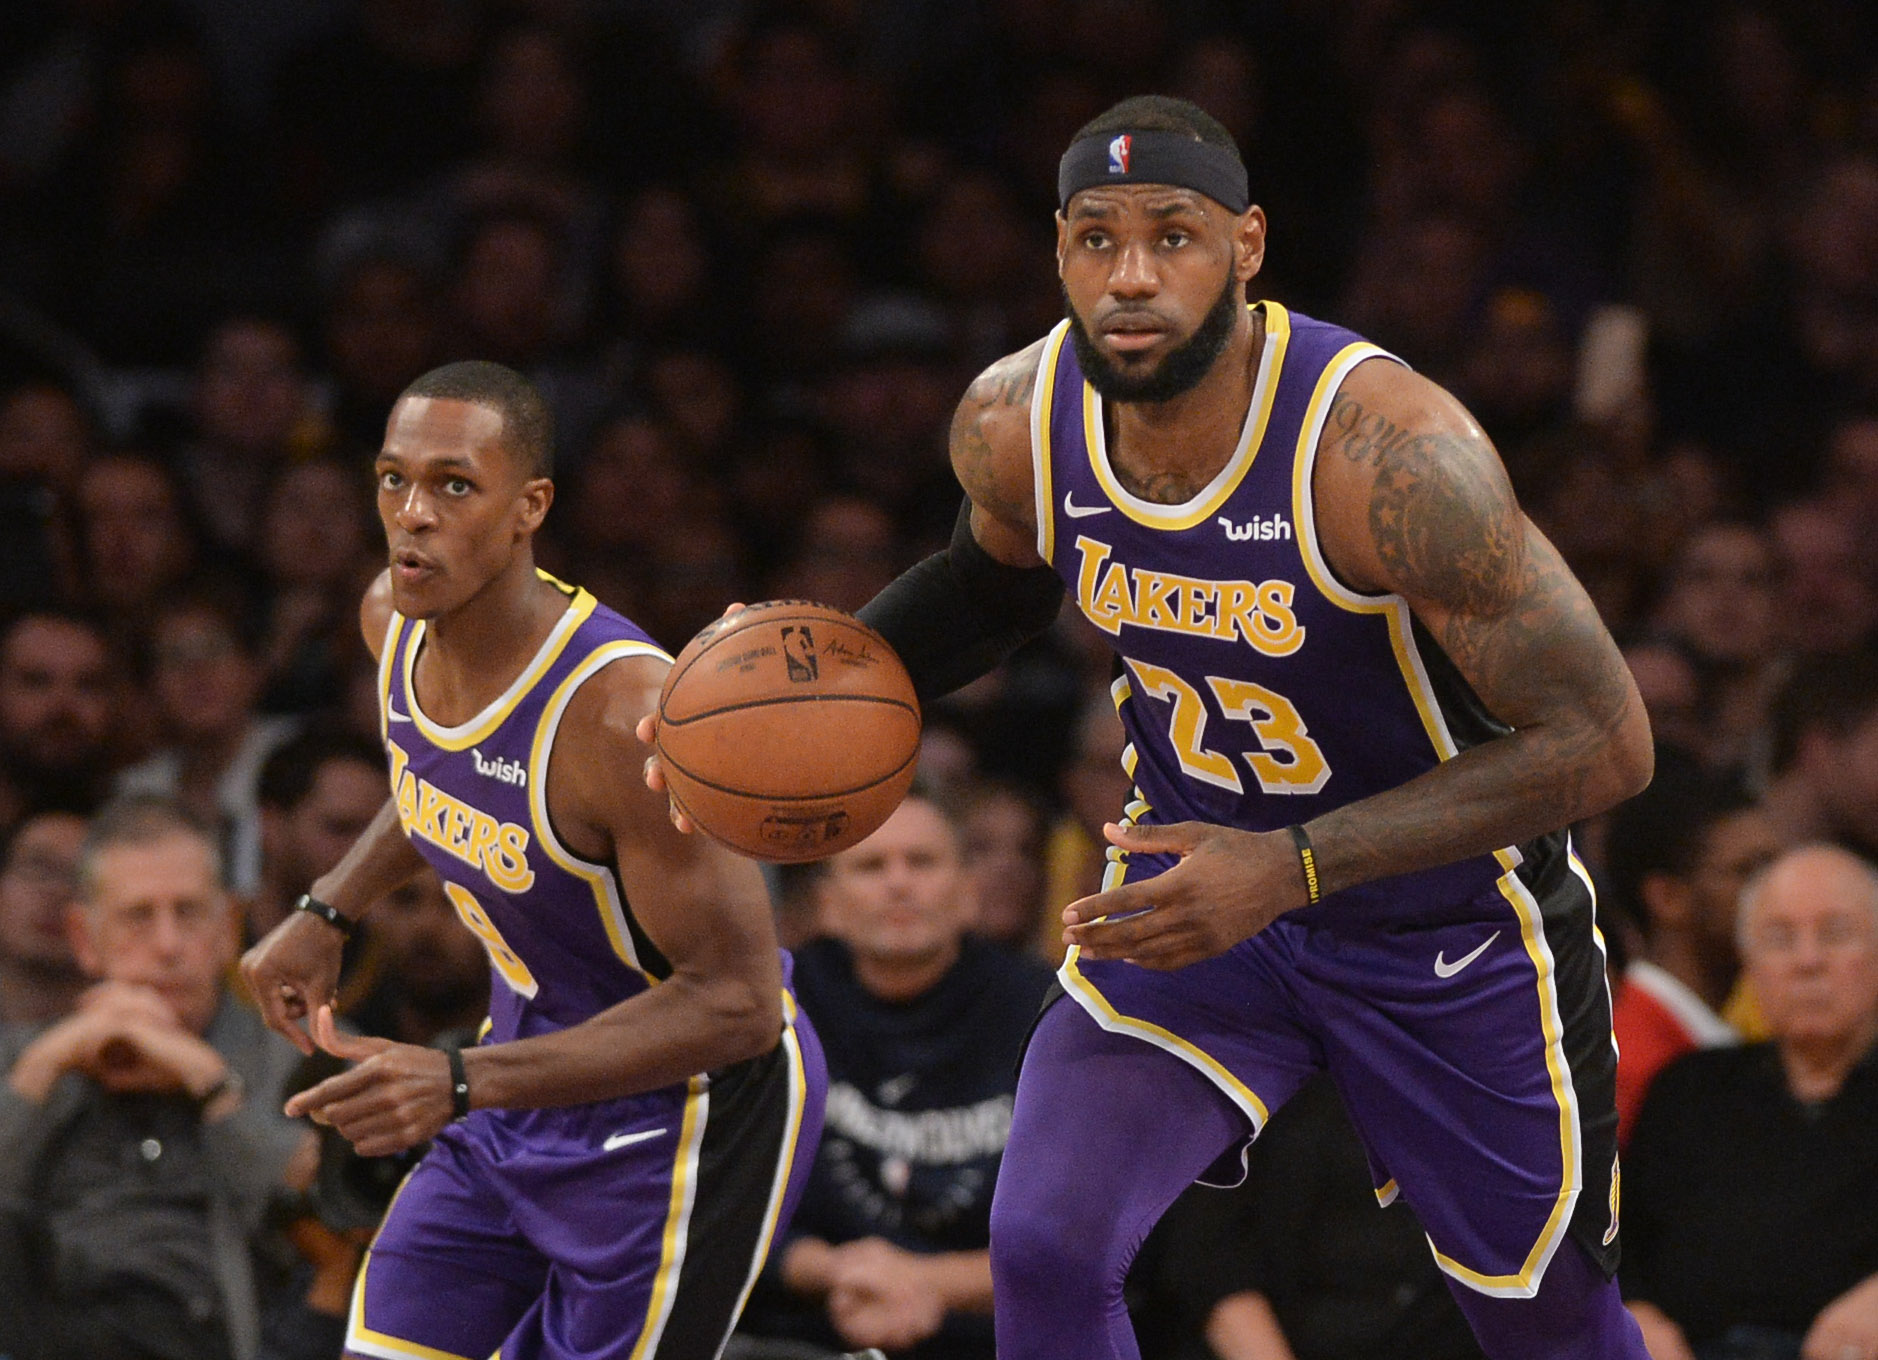 NBA Rumors: 2019 free agents don't want to be 'LeBron's caddy'